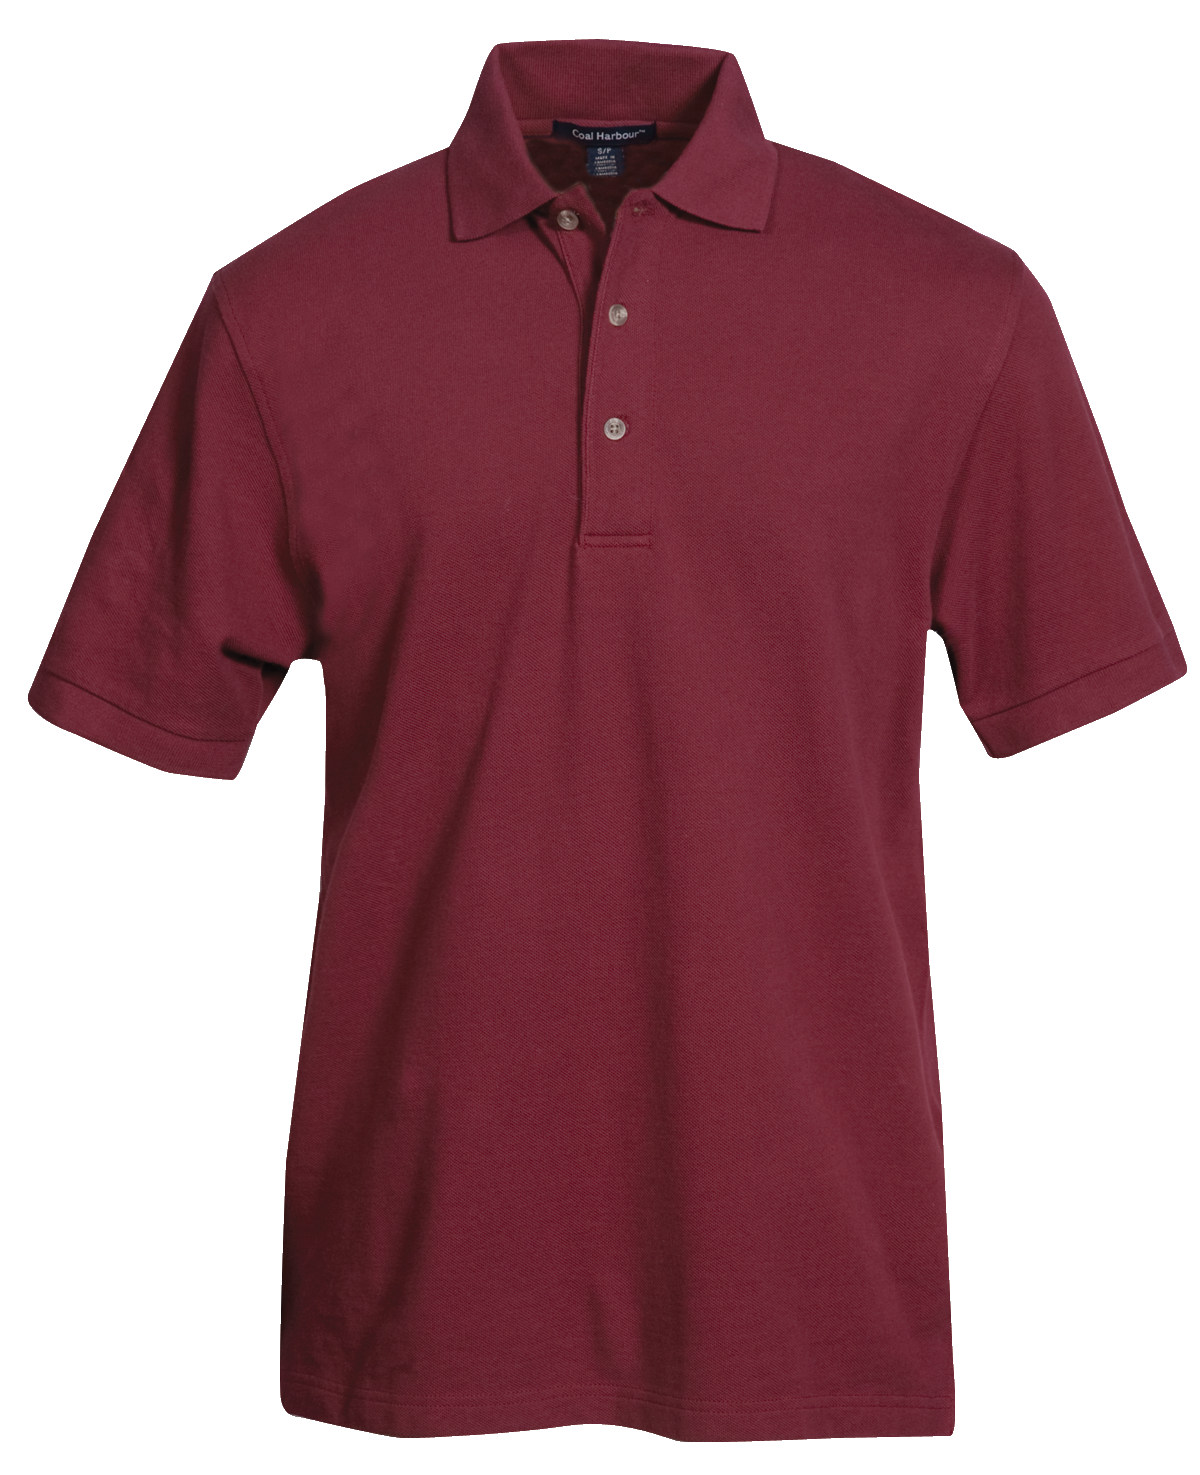 MEN'S COTTON POLO SHIRT - CLEARANCE - BURGANDY